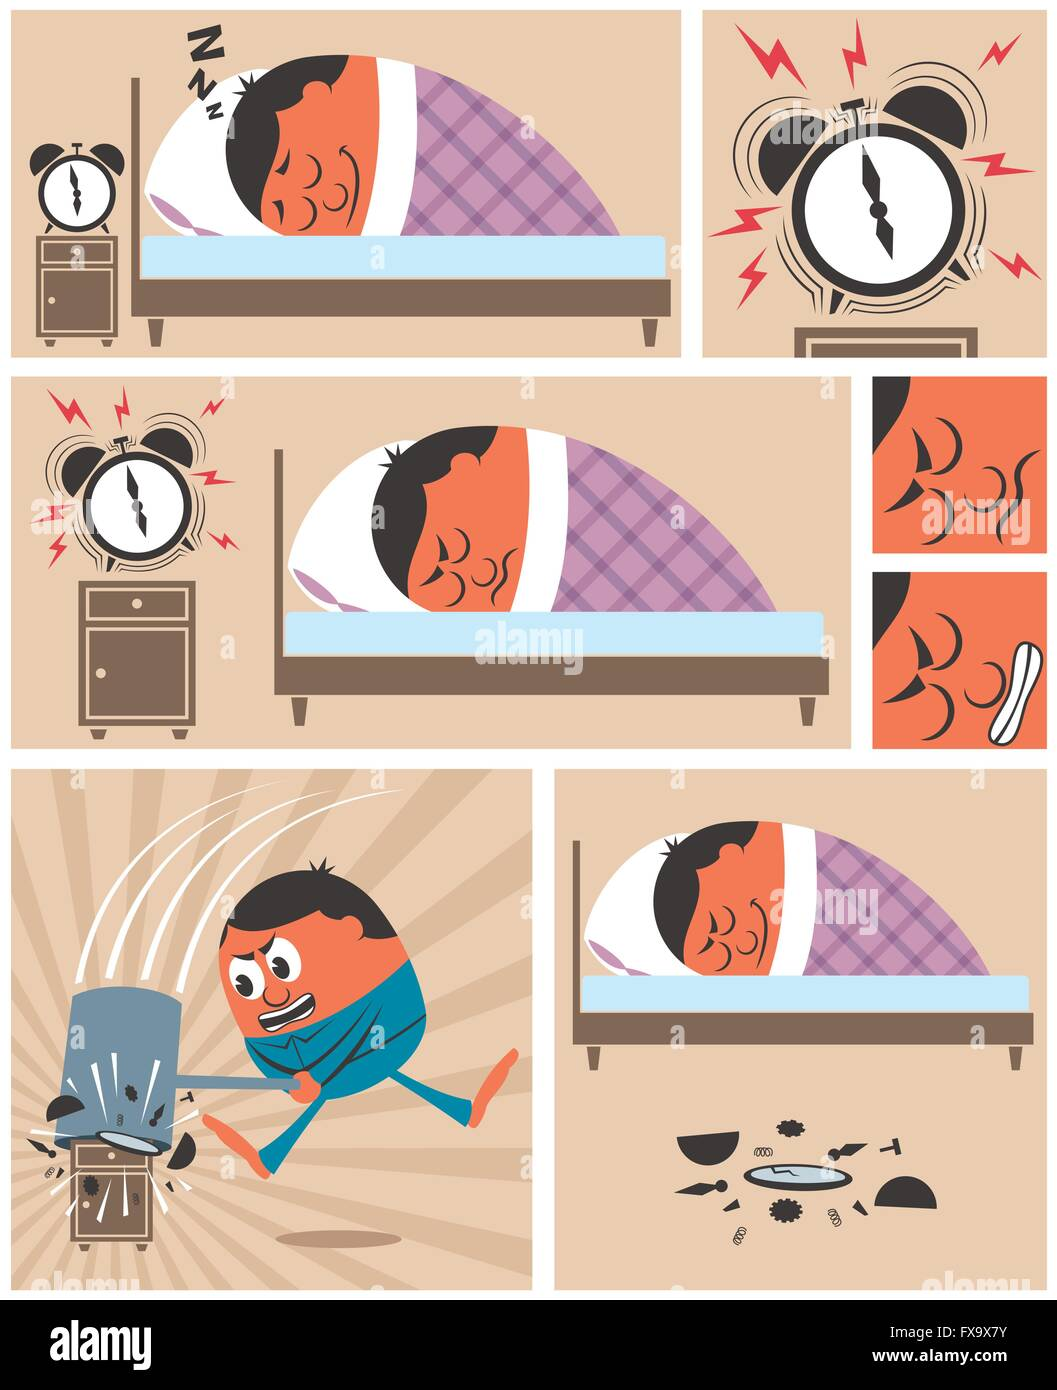 Short story about man having difficulty to wake up in the morning. No transparency and gradients used. - Stock Vector